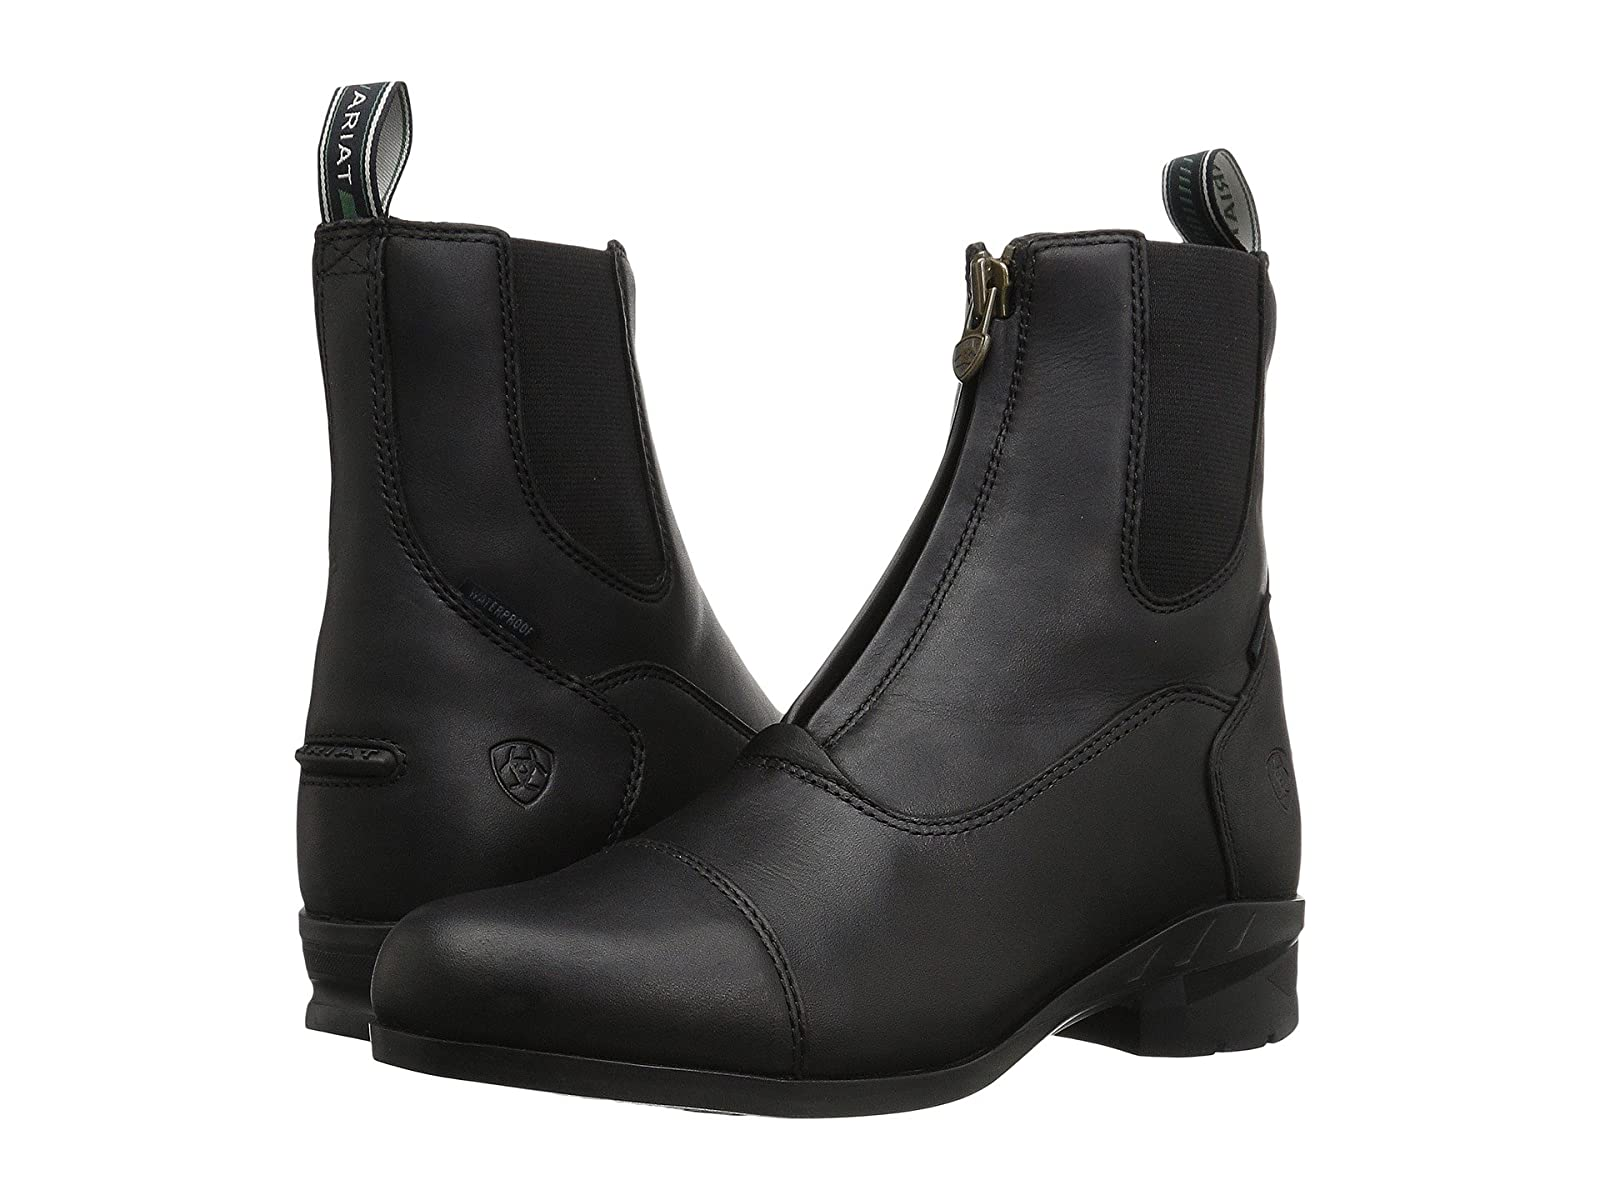 Ariat Heritage IV Zip H2OSelling fashionable and eye-catching shoes